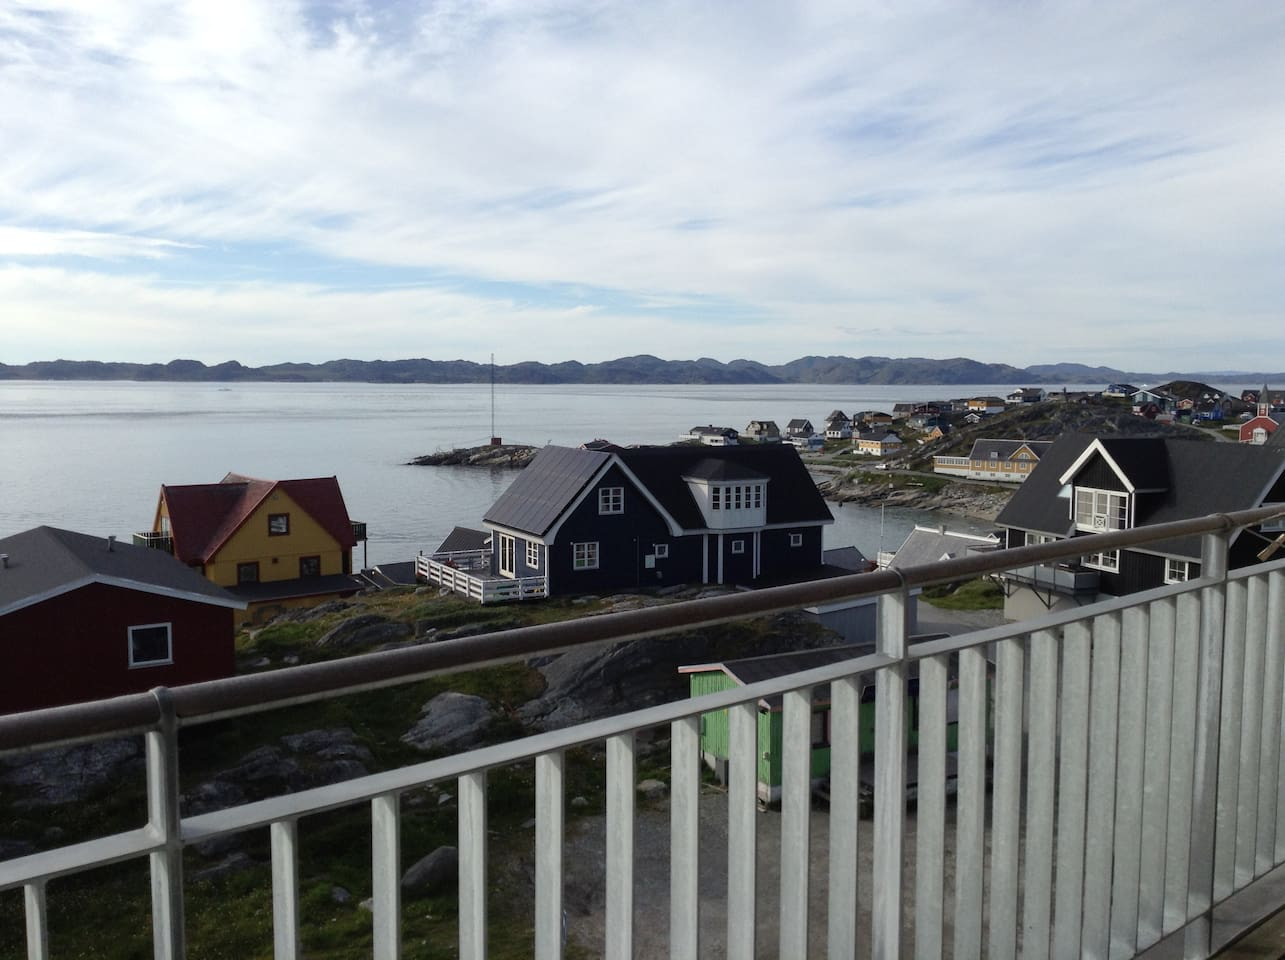 View of the fjord from the balcony